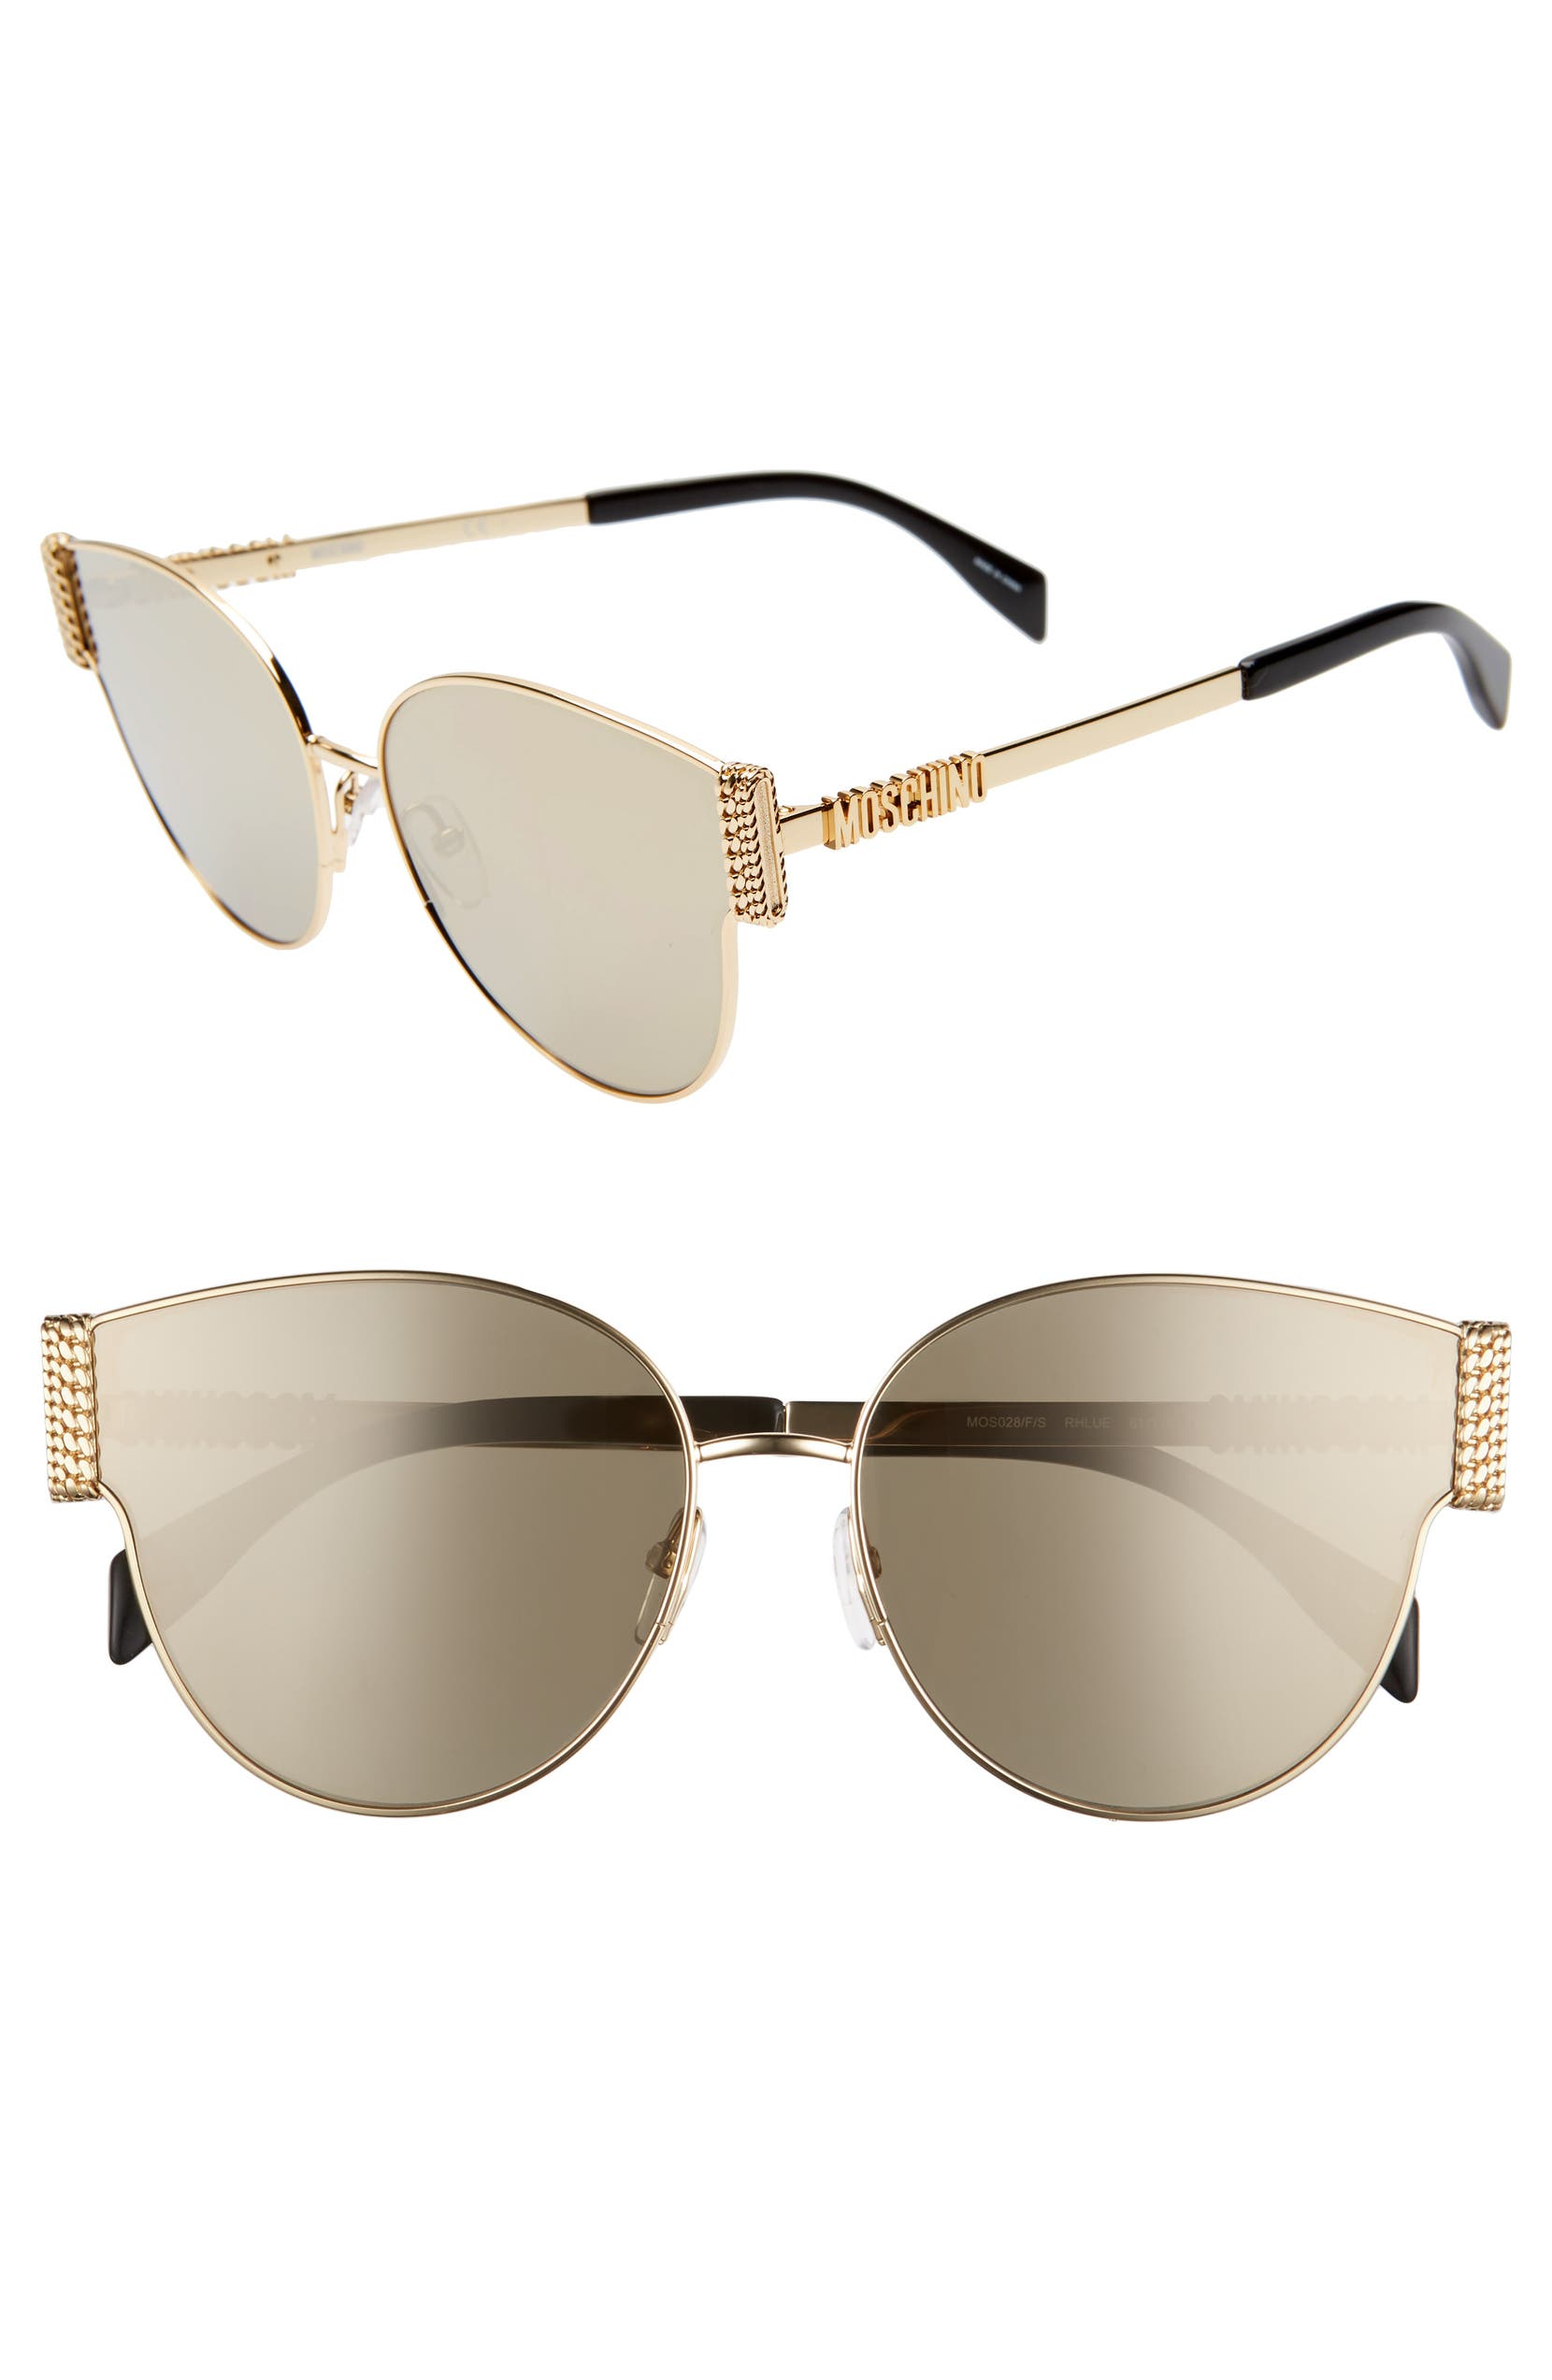 06b5f98151b3 Moschino 61mm Special Fit Cat Eye Sunglasses | Nordstrom